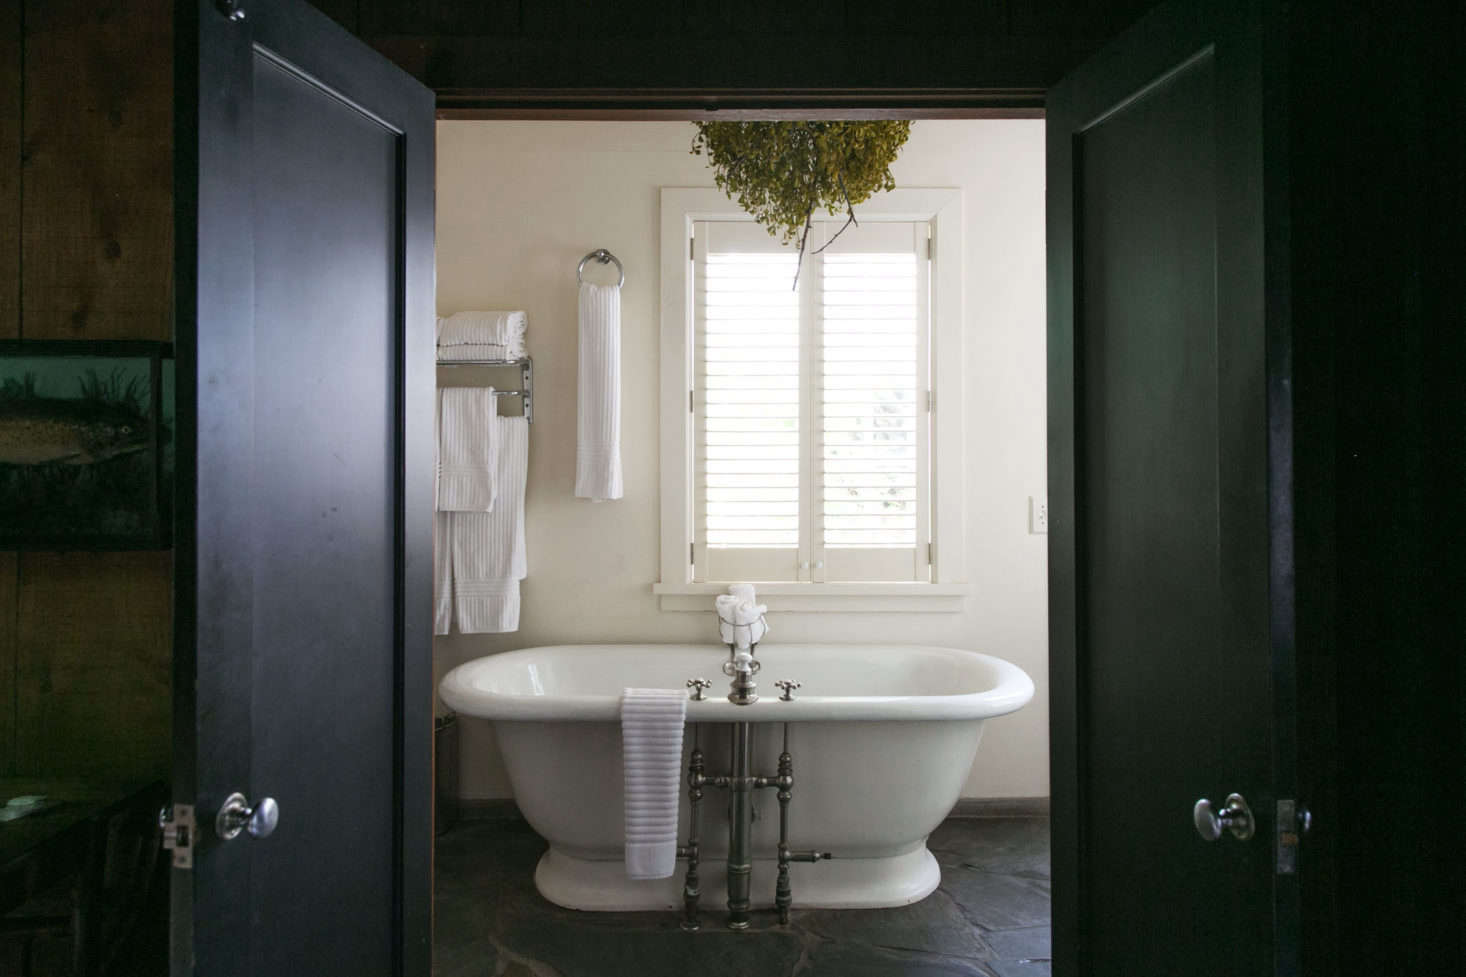 The White Bath Has A Rough Hewn Stone Tiled Floor And Matte Black Painted  Doors